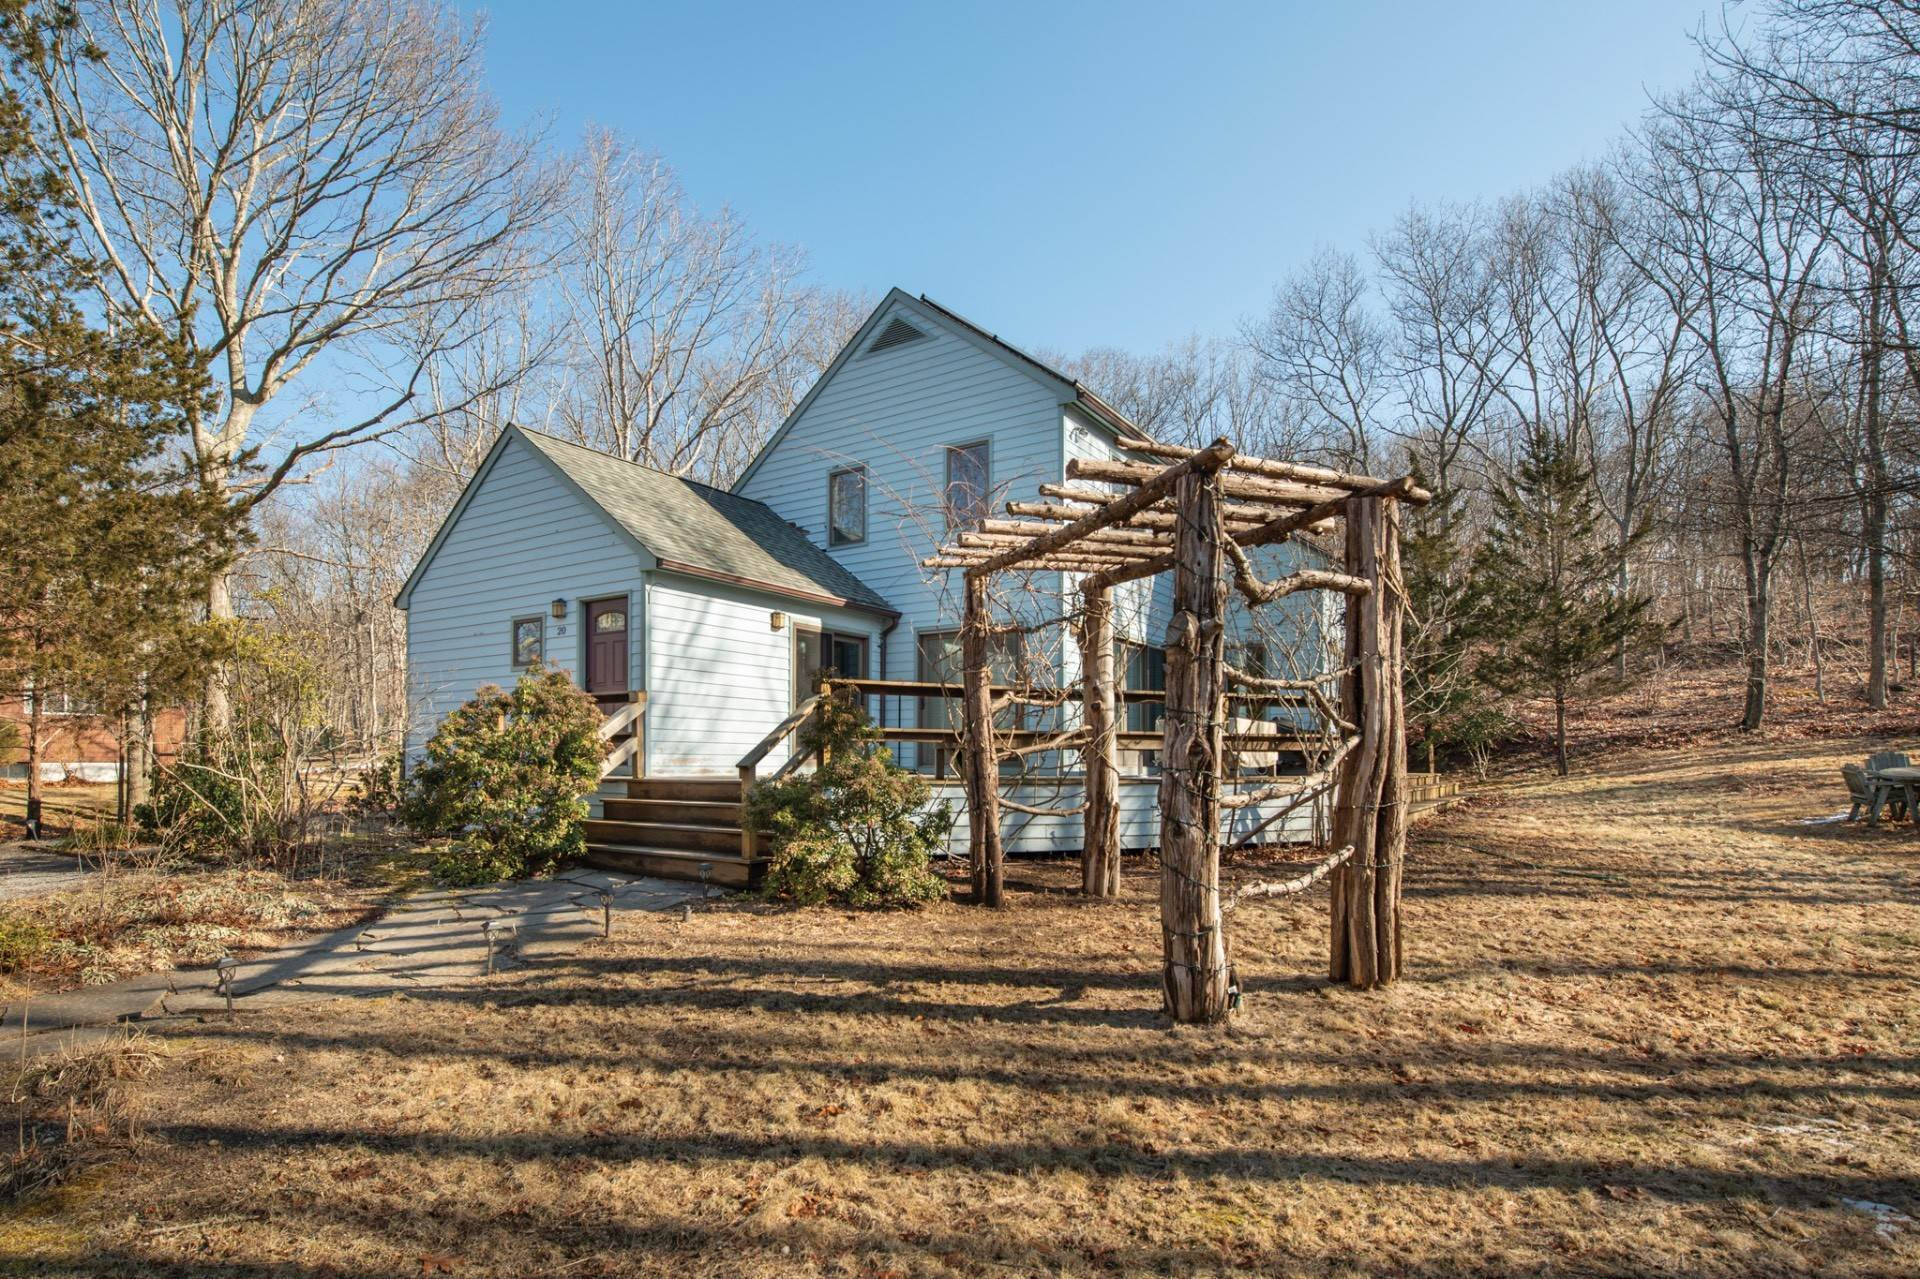 Single Family Home for Sale at Newly Listed In Sag Harbor... 20 Collingswood Drive, Sag Harbor, NY 11963